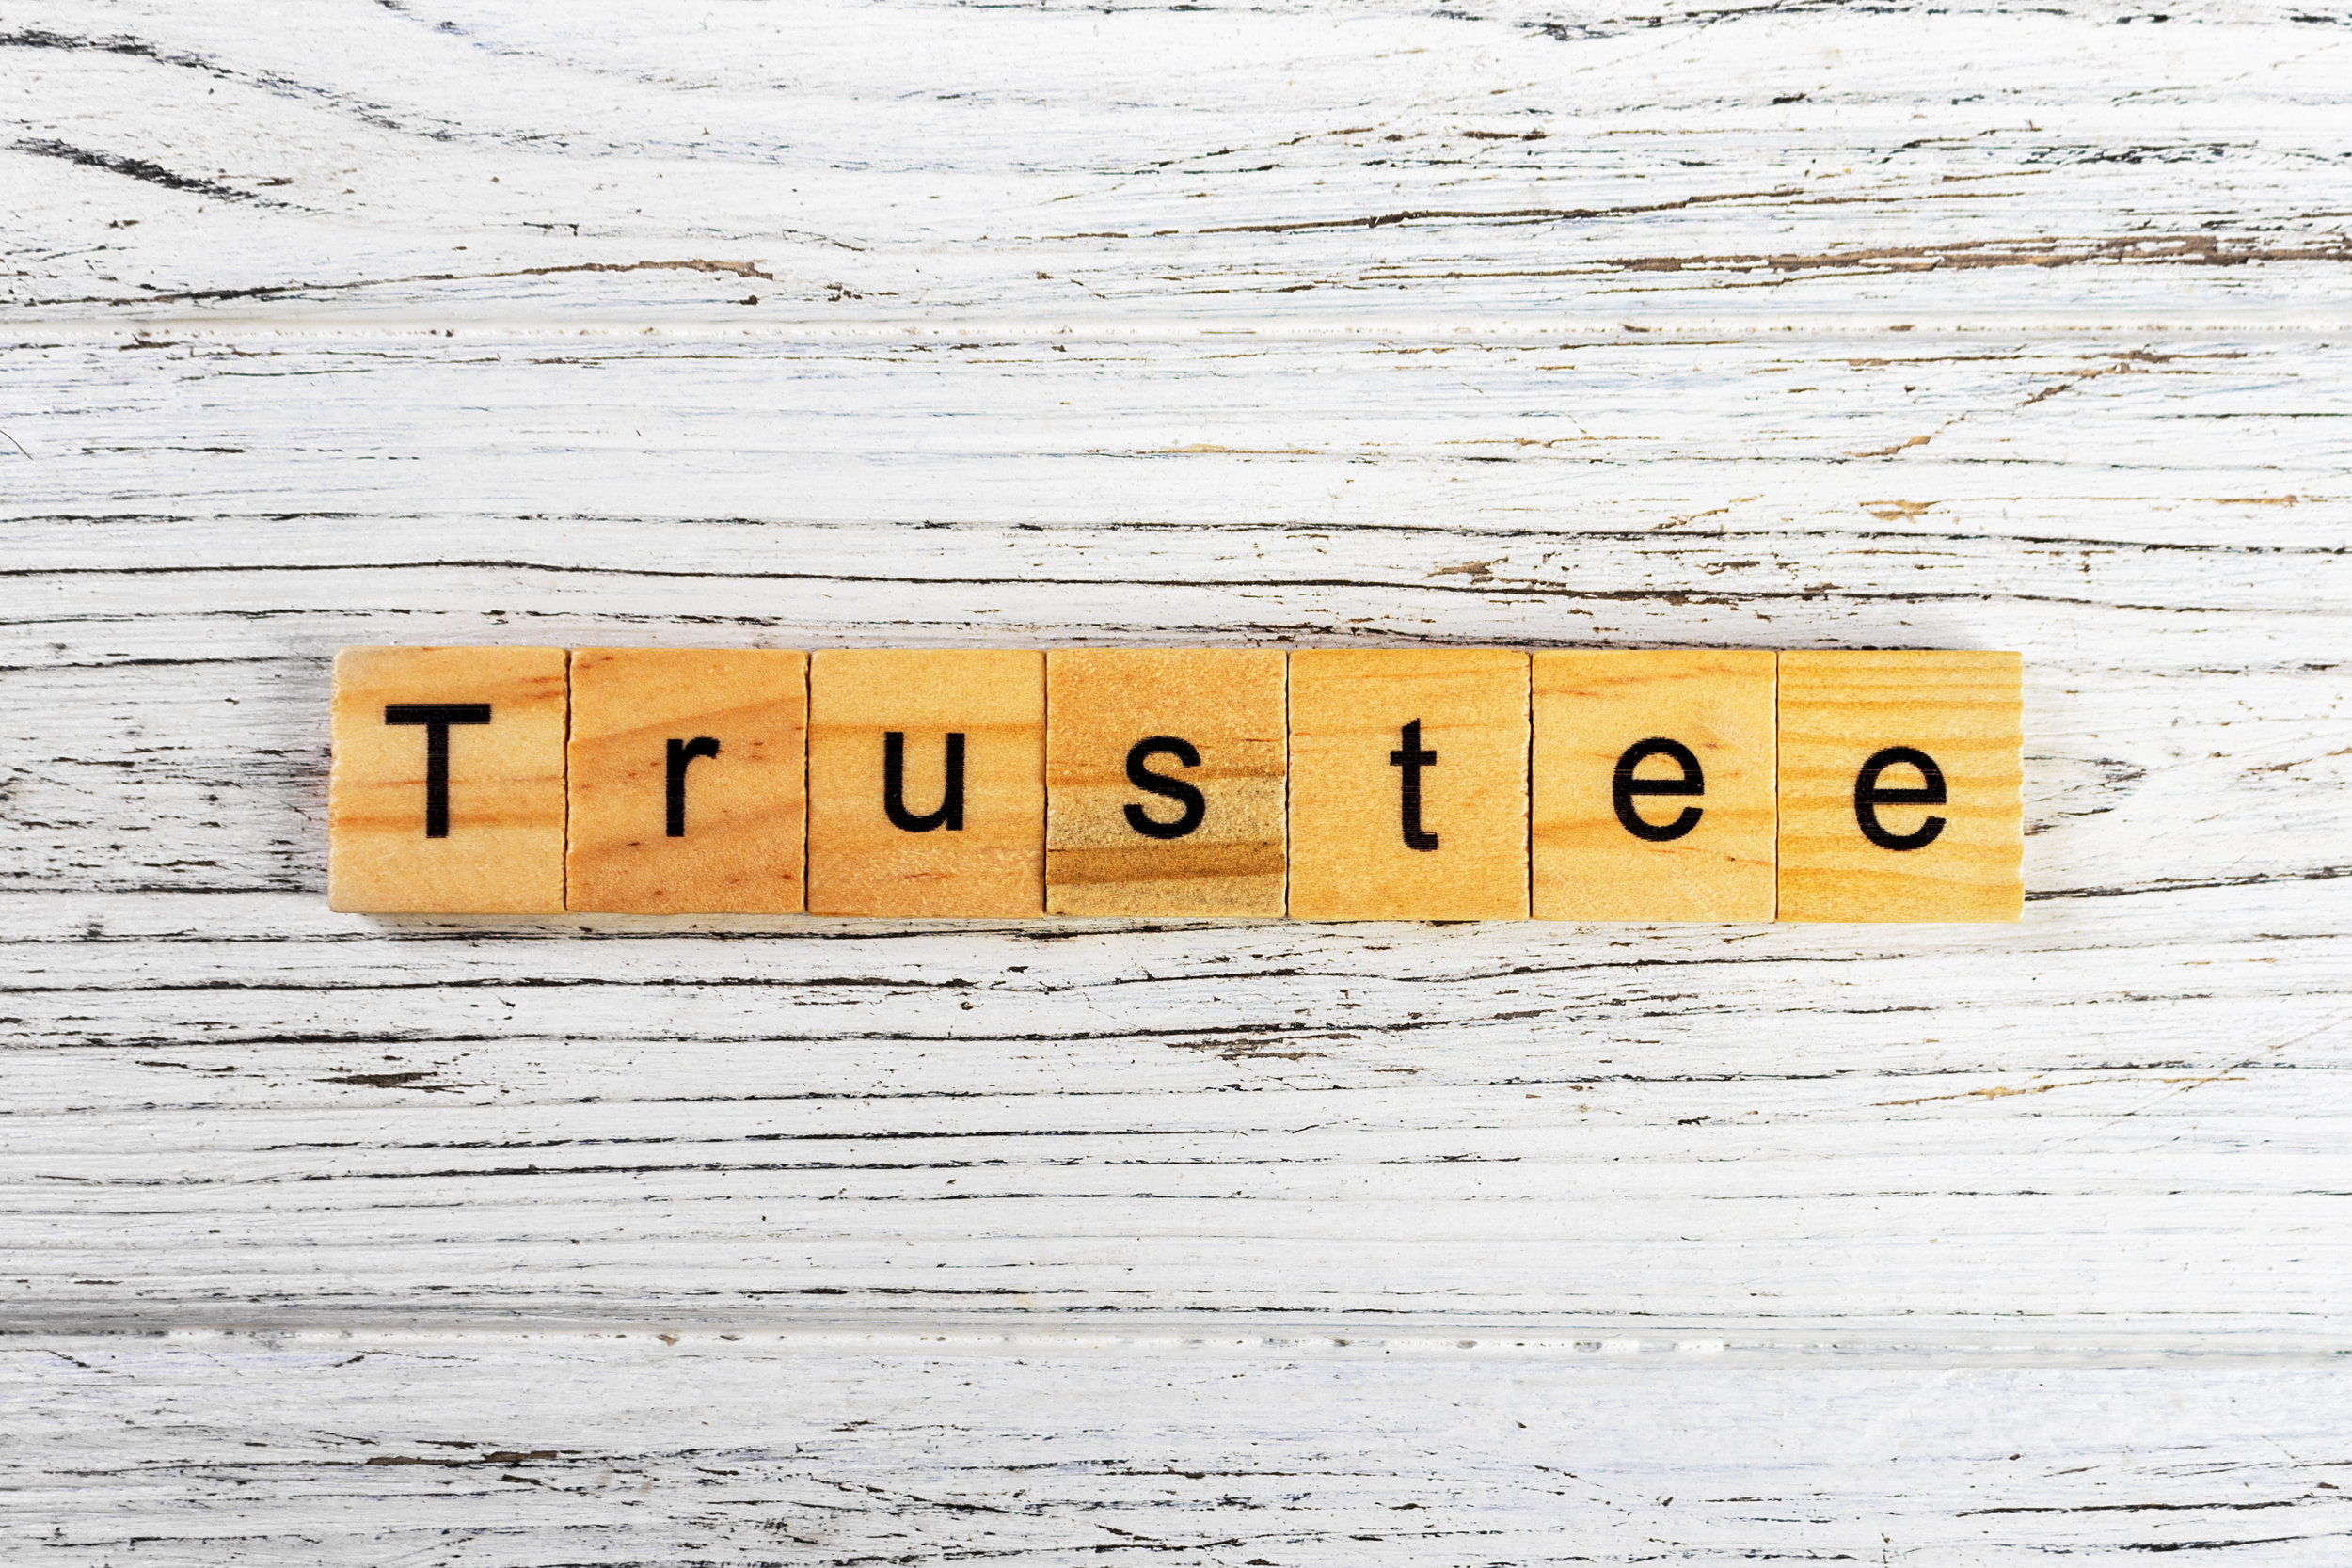 Ultimately, trustees have a fiduciary duty to properly manage the trust in the best interest of all the trust beneficiaries.